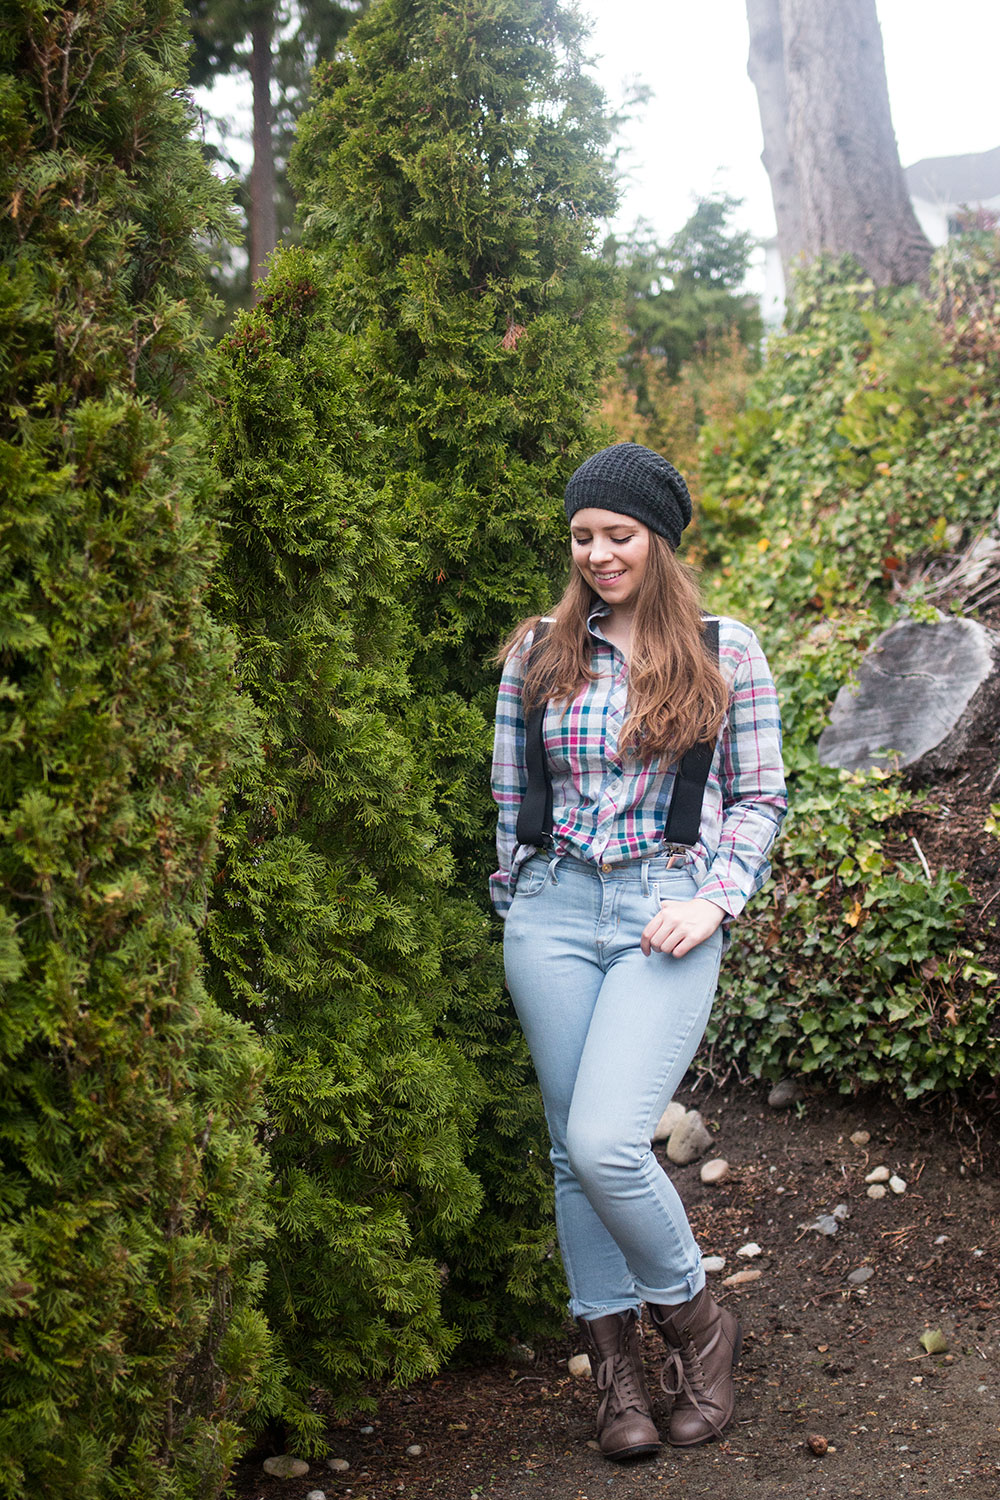 DIY Lumberjack Costume for Women // Halloween Costumes to Wear to Work // Hello Rigby Seattle Fashion Blog